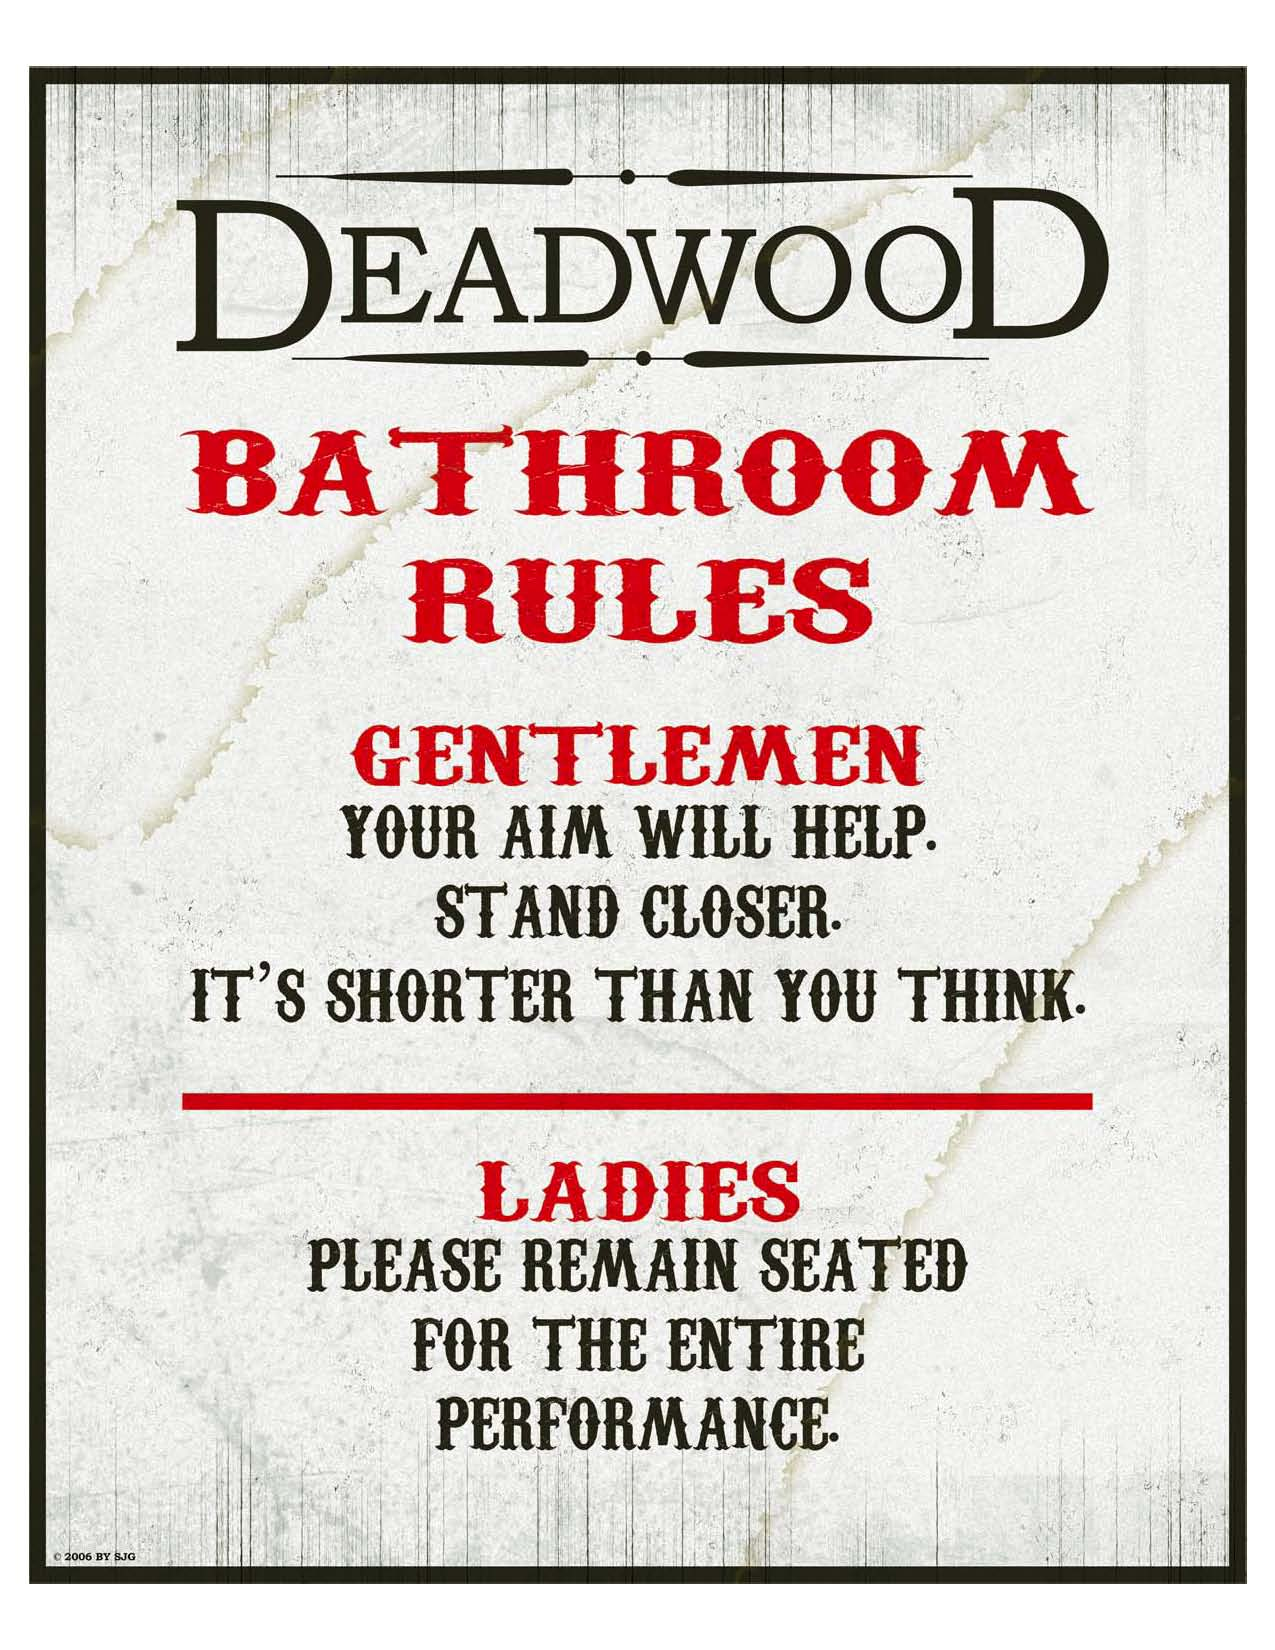 ThePokerDude's Party Posters   The Deadwood Chronicles